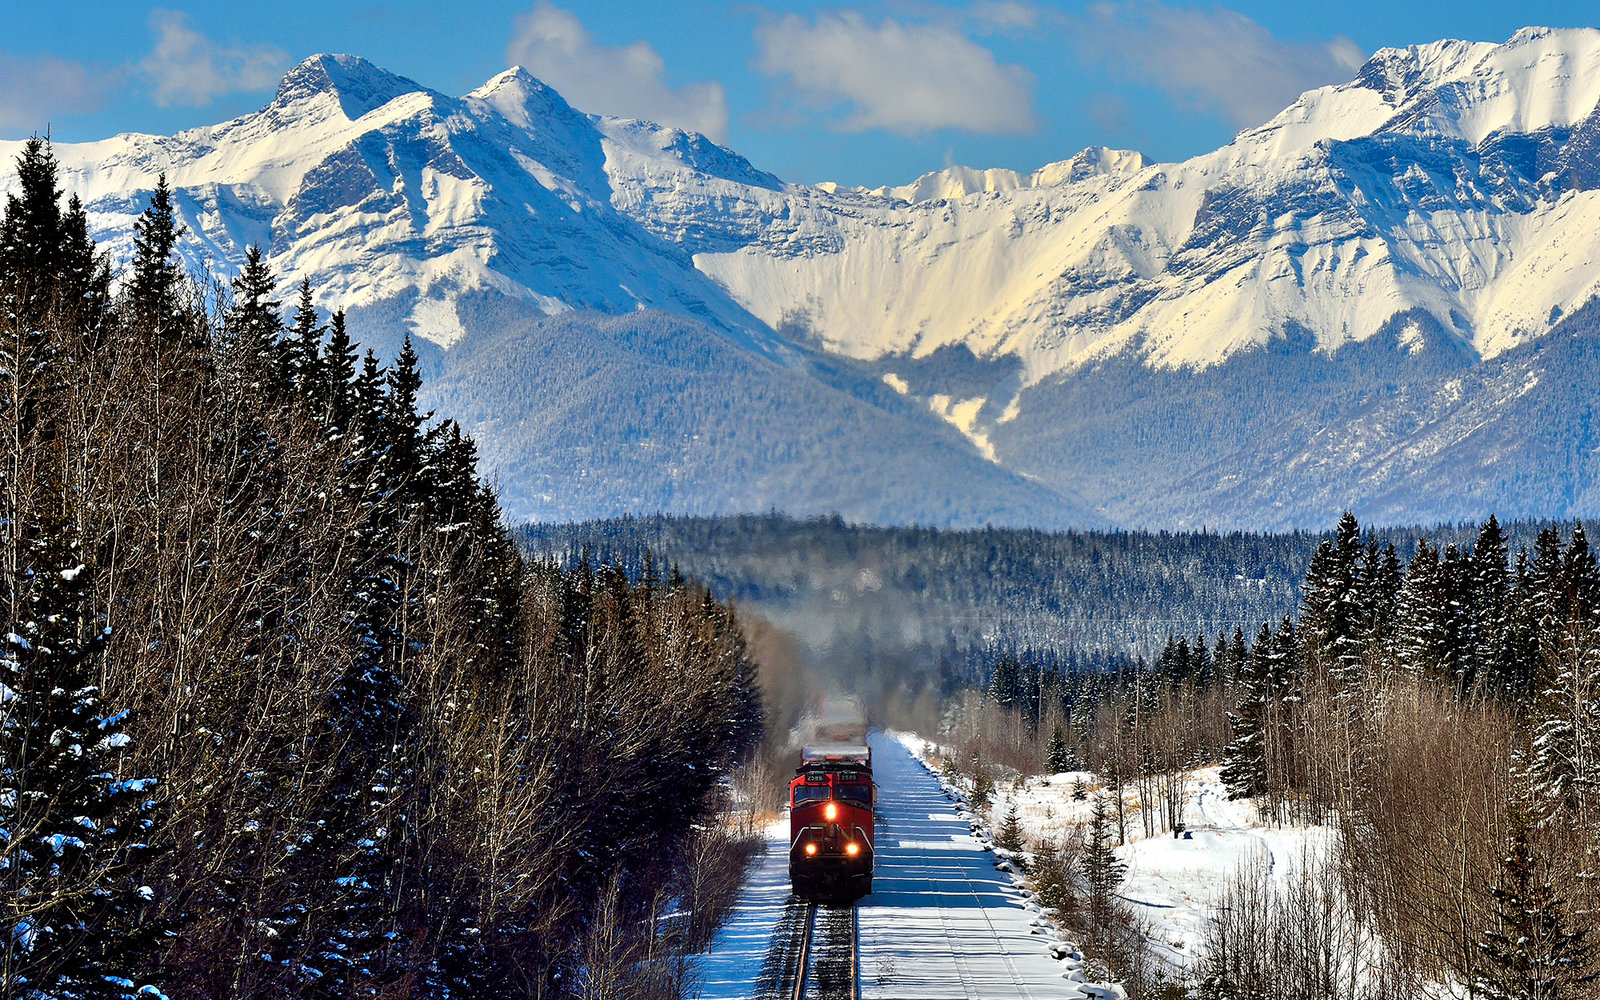 Travel Through the Canadian Rockies by Train